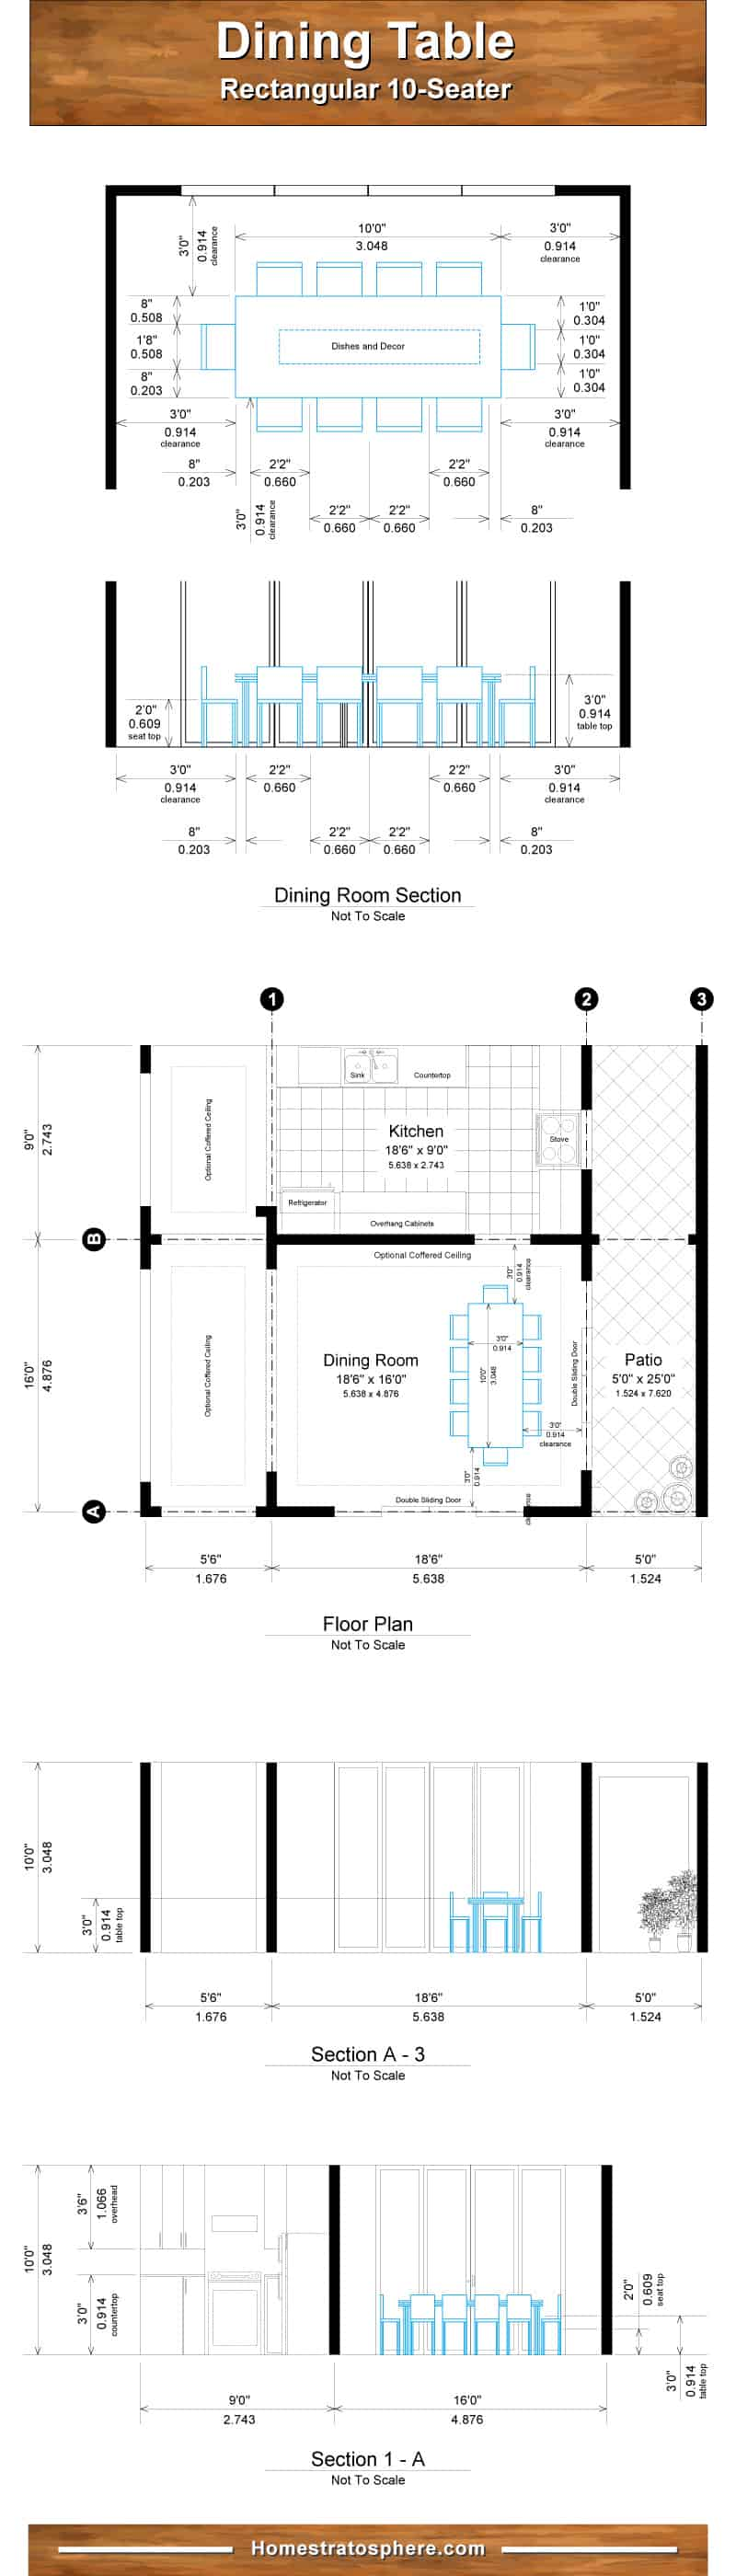 Proper Dining Room Table Dimensions For 4 6 8 10 And 12 People Charts